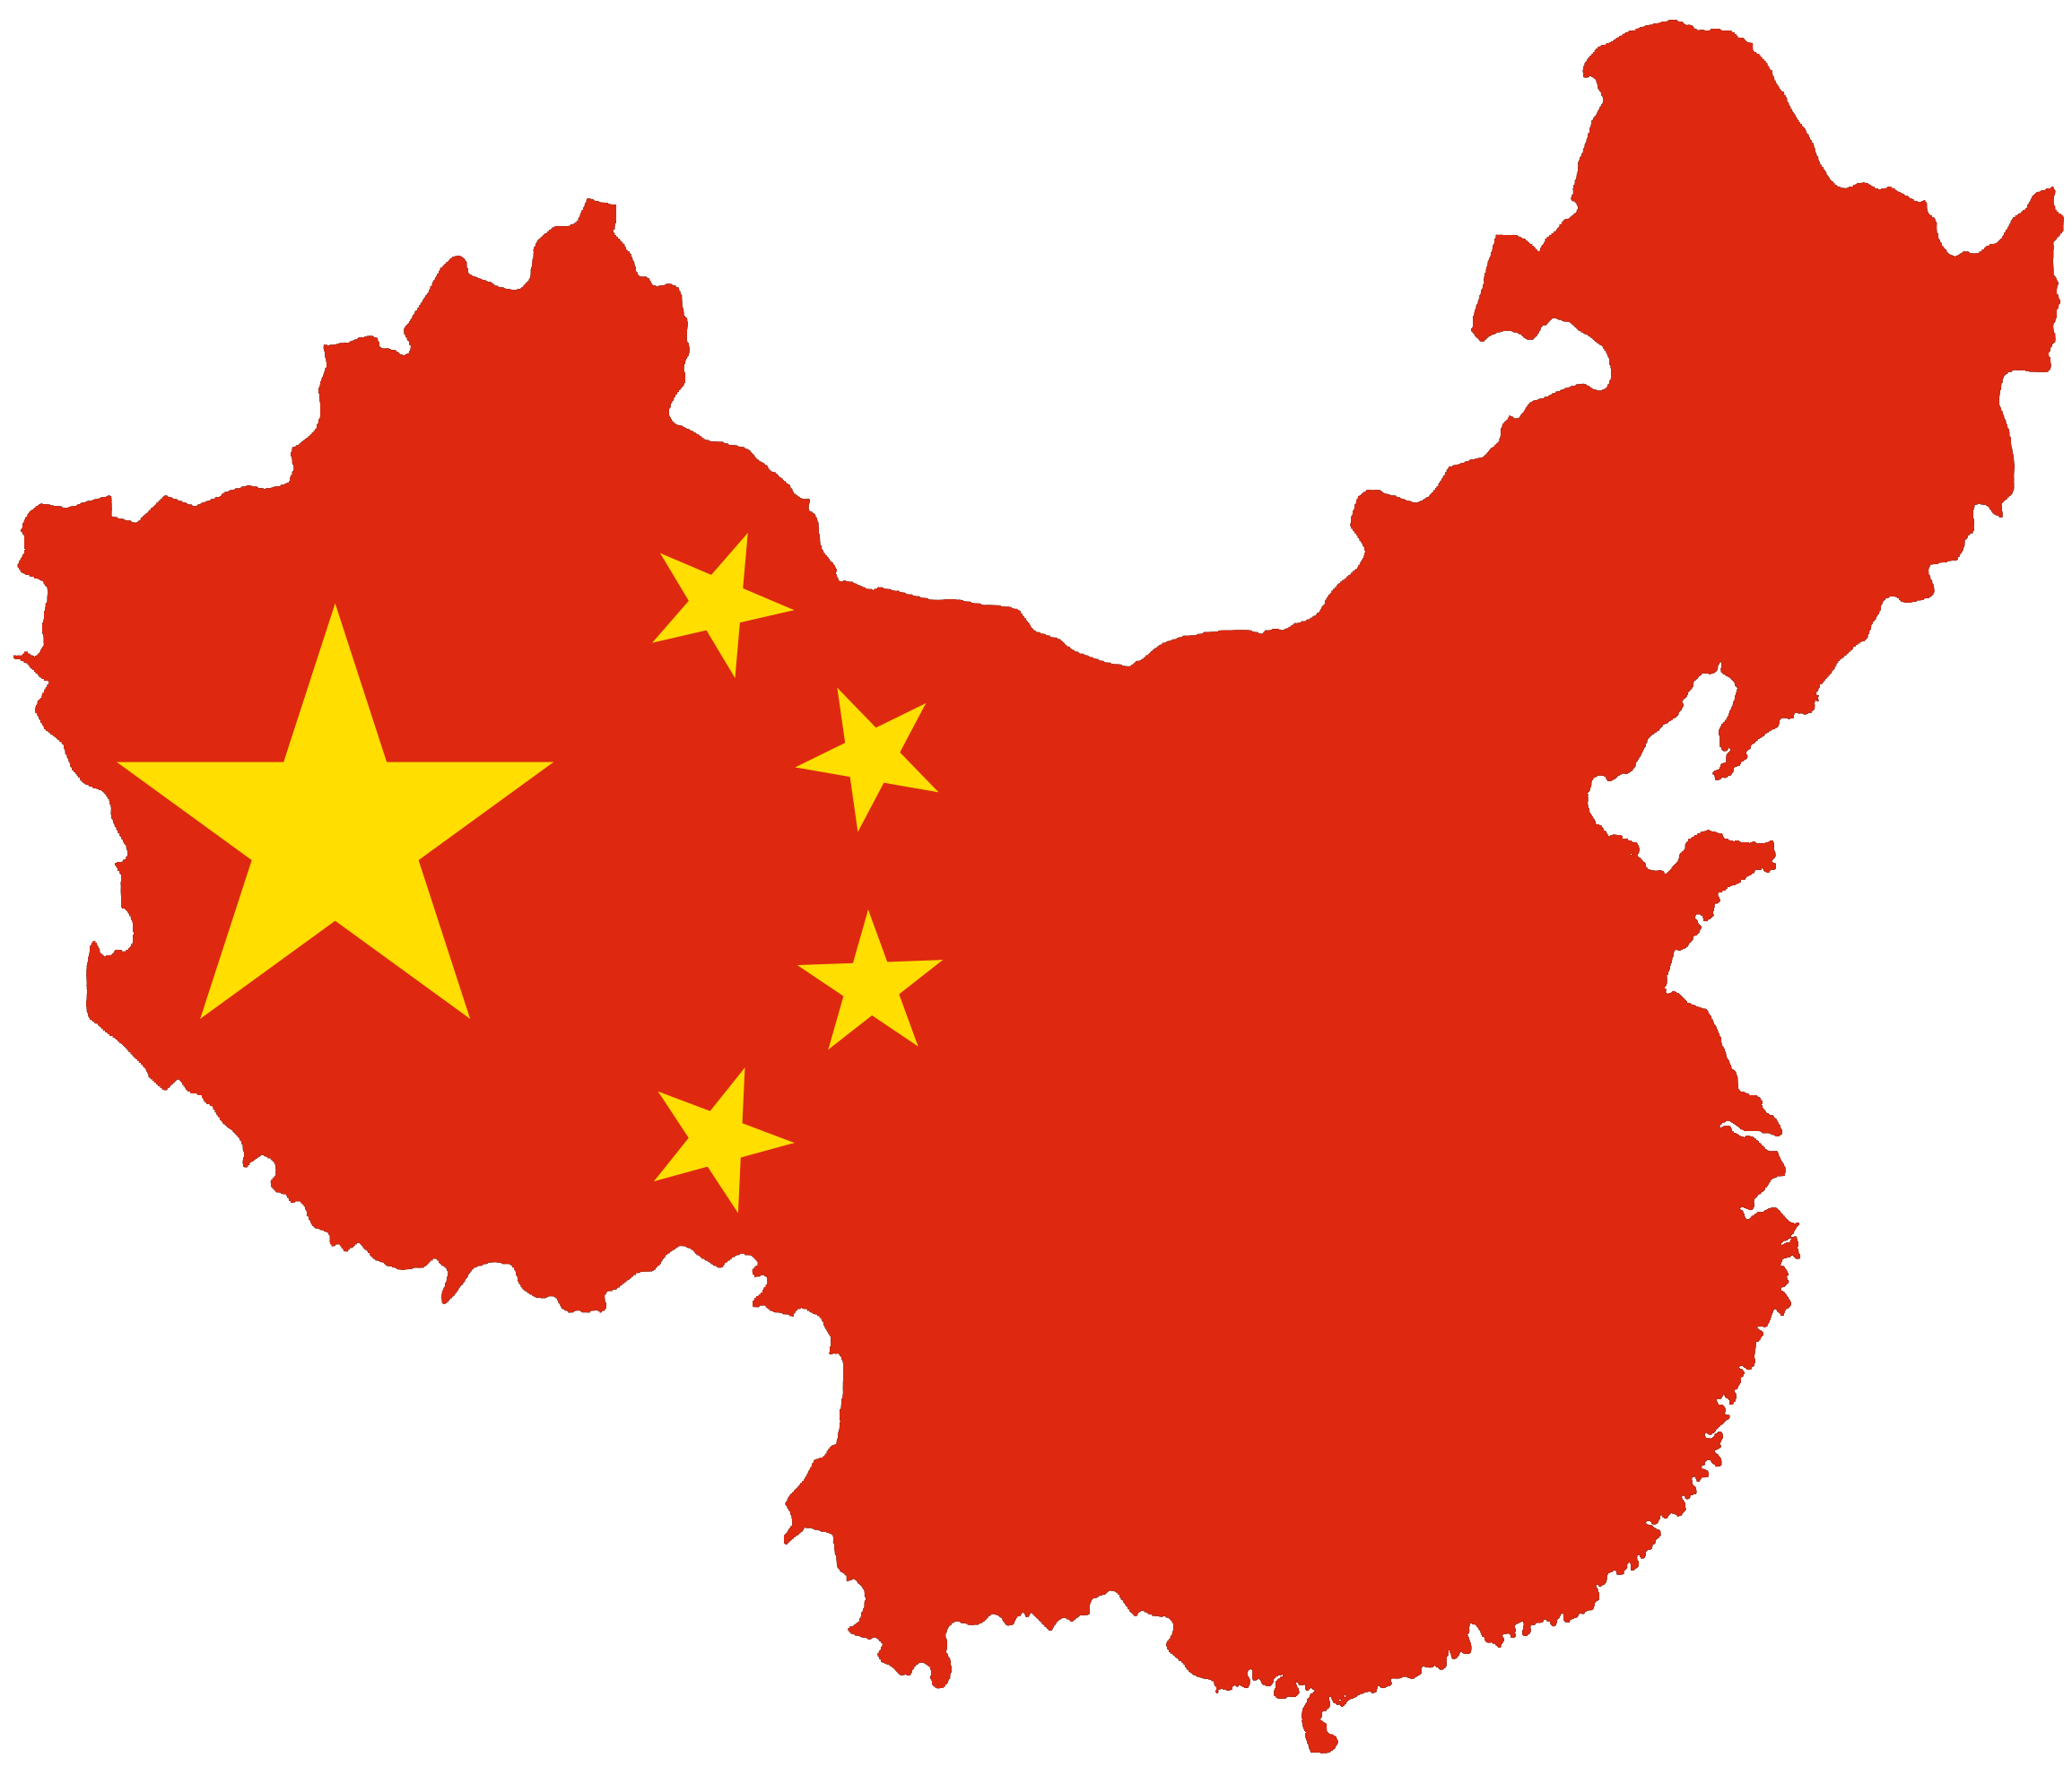 Pin By Immortal Spark On Flag Maps China Flag China Map Flag